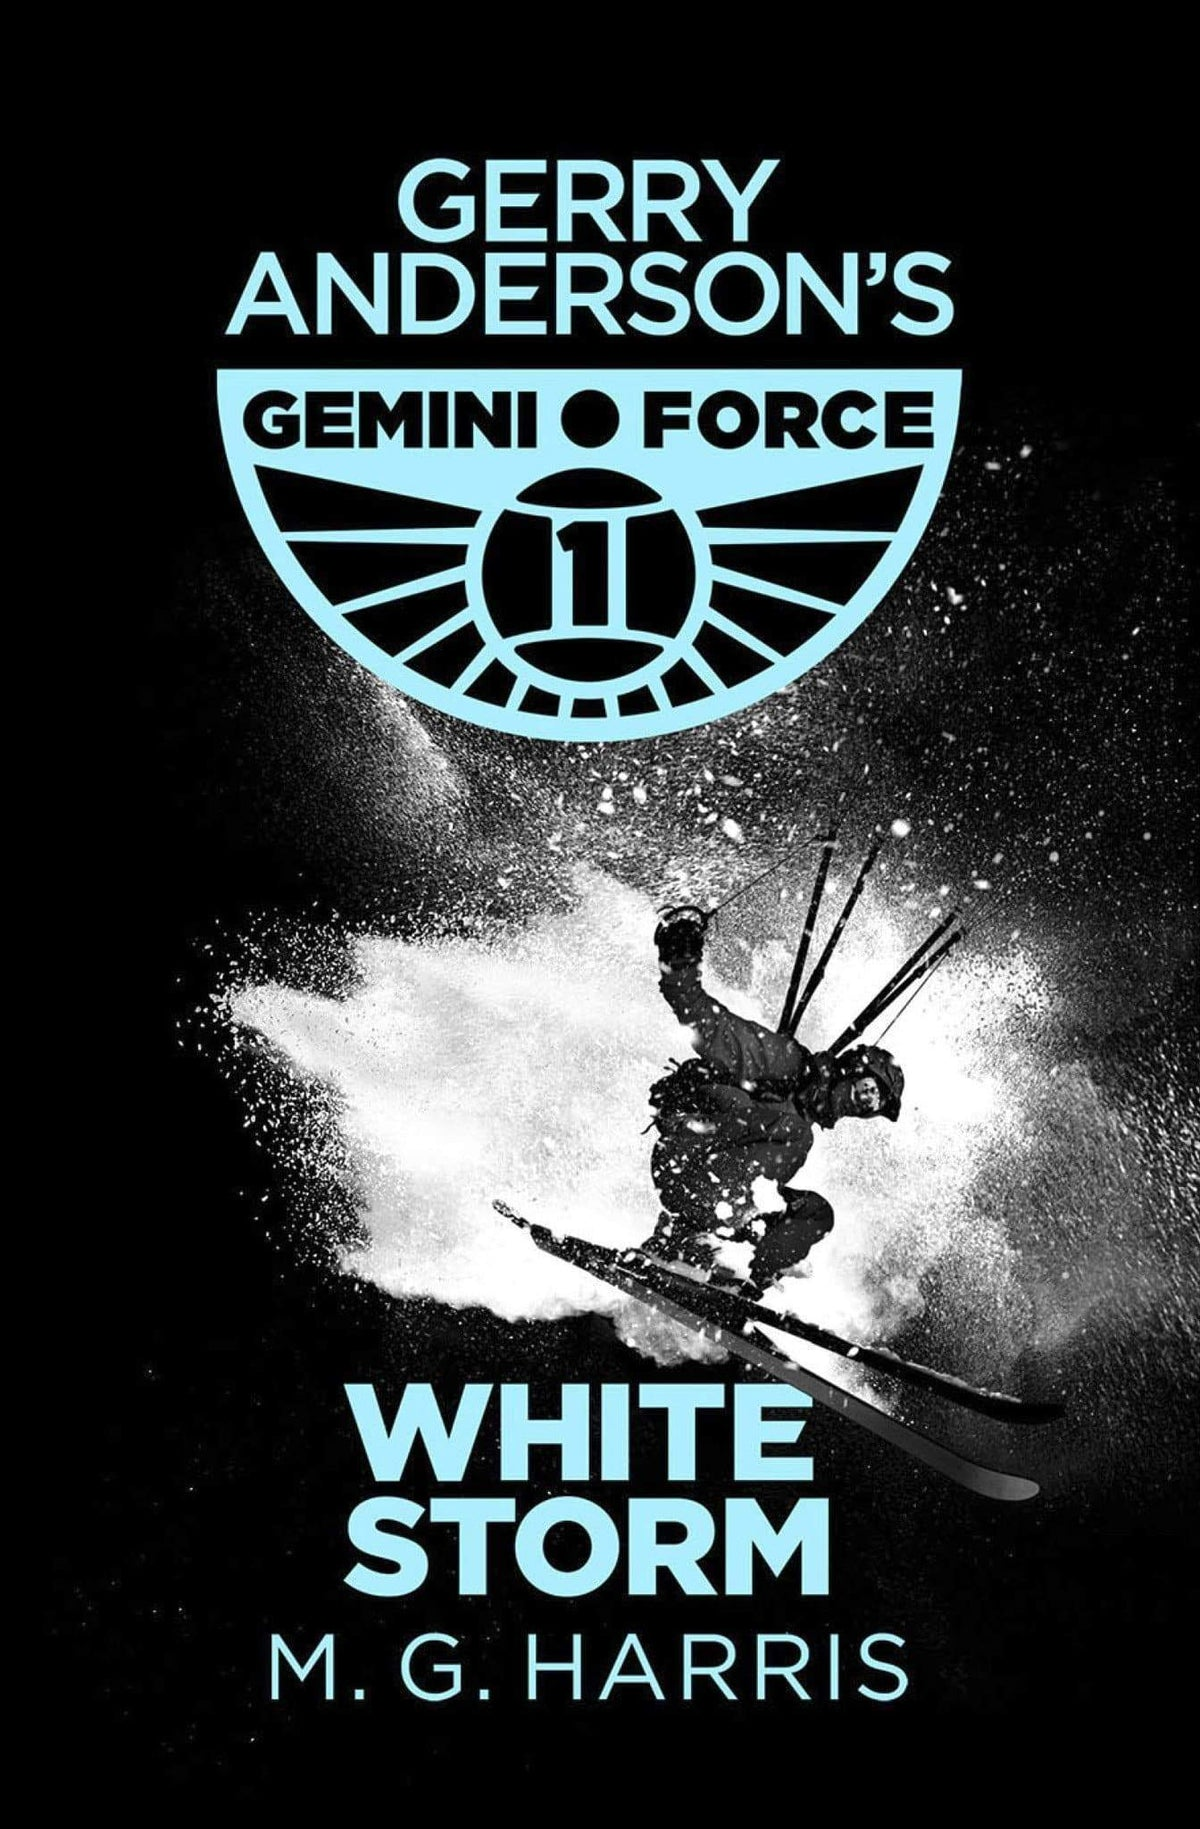 Gemini Force One - White Storm - The Gerry Anderson Store